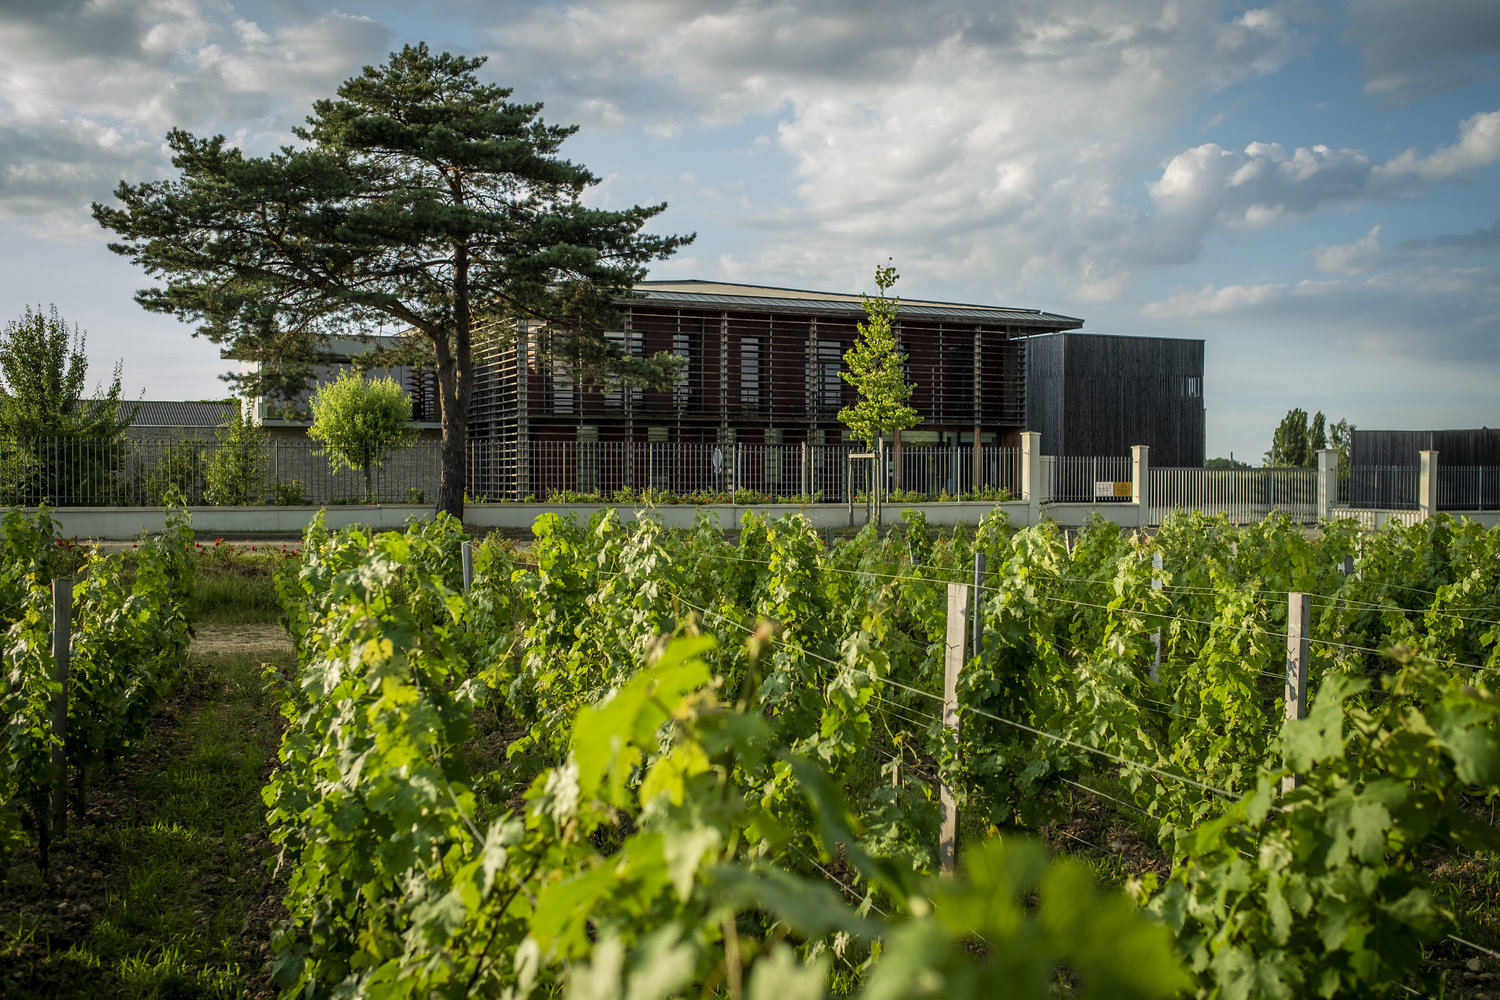 Chateau Couhins vineyards -part of the French National Institute of Agricultural Research (Image: Chateau source)